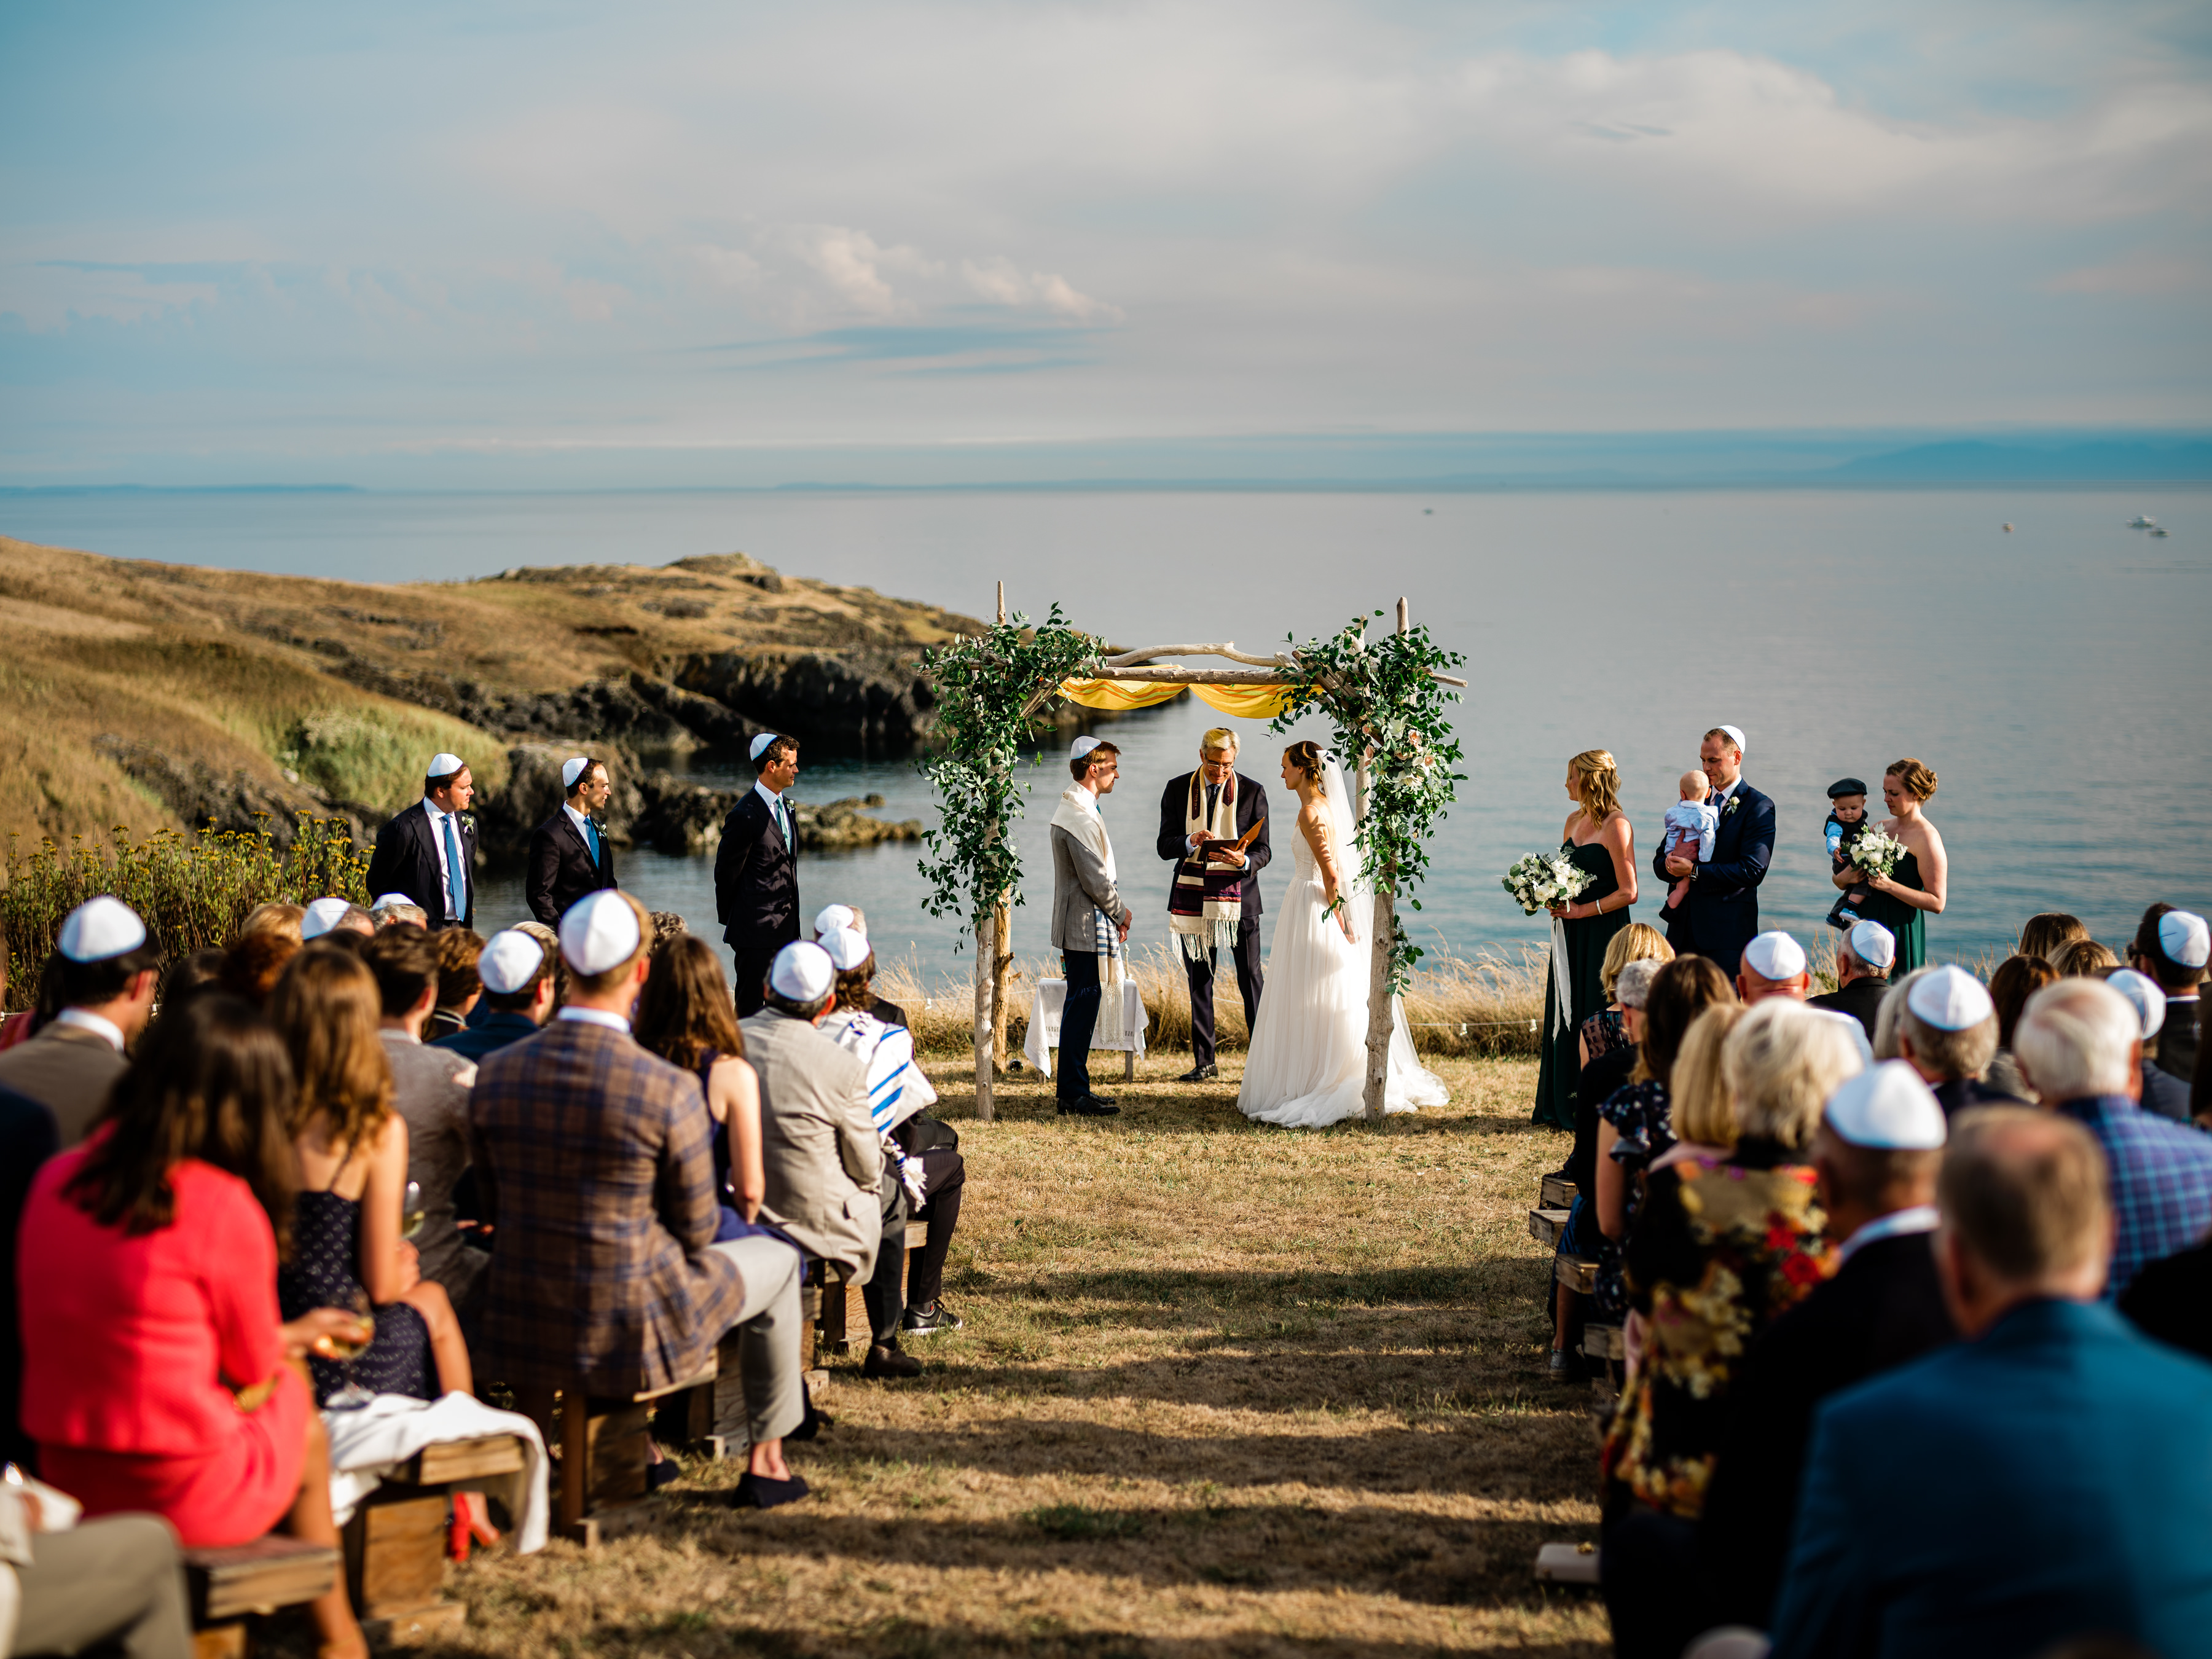 Guests seated at ceremony under seaside chuppah - photo by Alante Photography